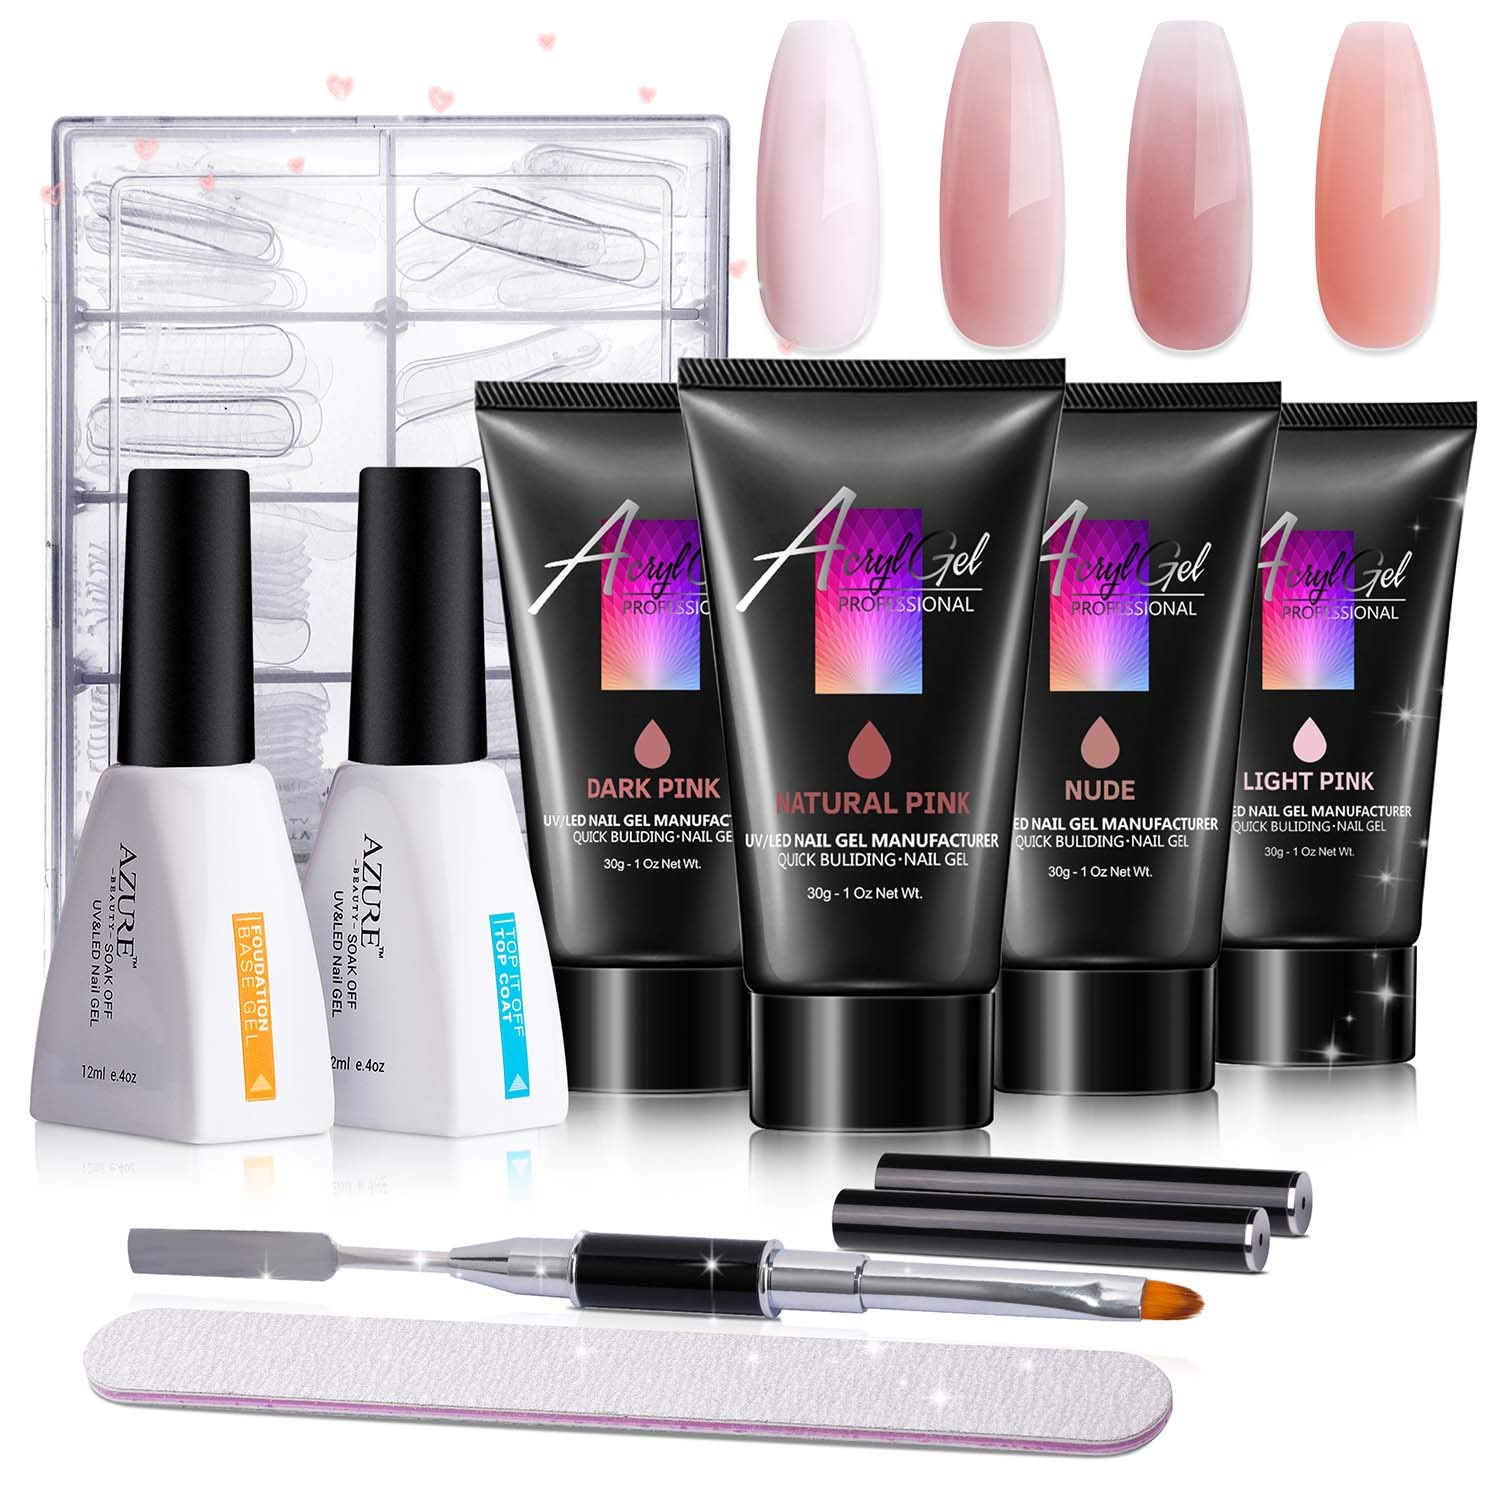 AZUREBEAUTY Poly Nail Gel Kit - 30ml/4pcs Gel Poly Nail Enhancement Builder Gel Nail Extension Poly Nail Gel Trial Kit for Starter and Professional Nail Technician All-in-One Kit by AZUREBEAUTY